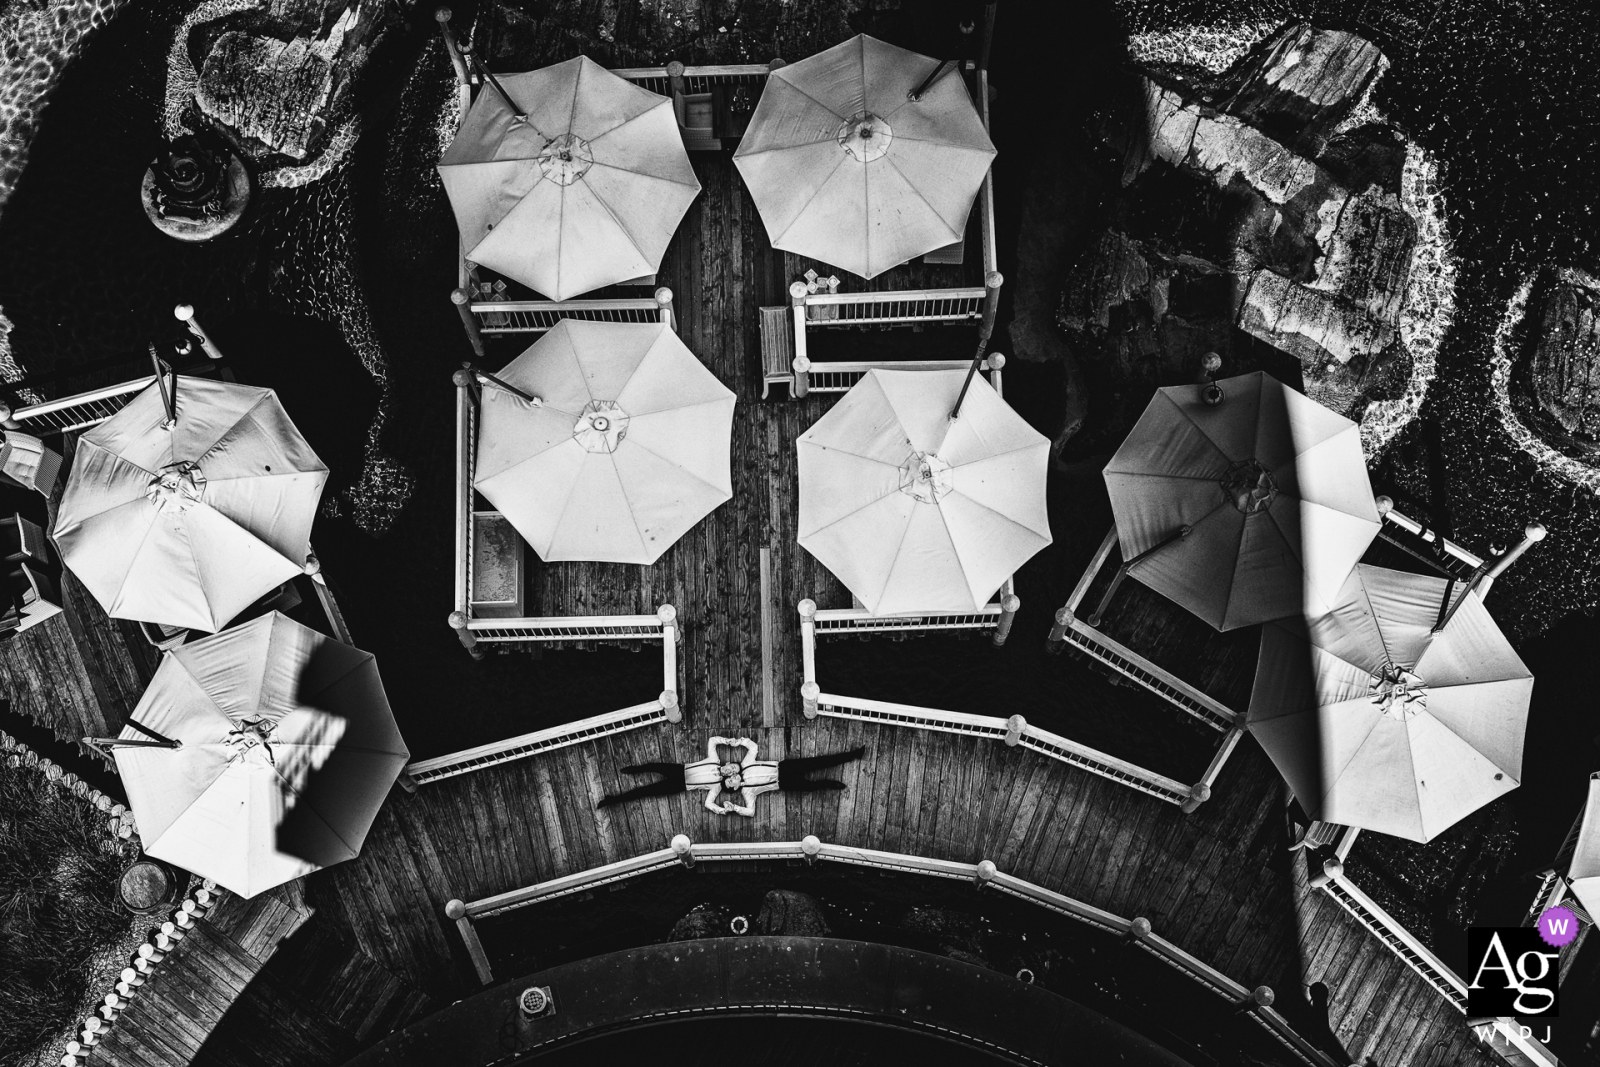 Europapark artistic wedding photo from a high drone angle with umbrellas